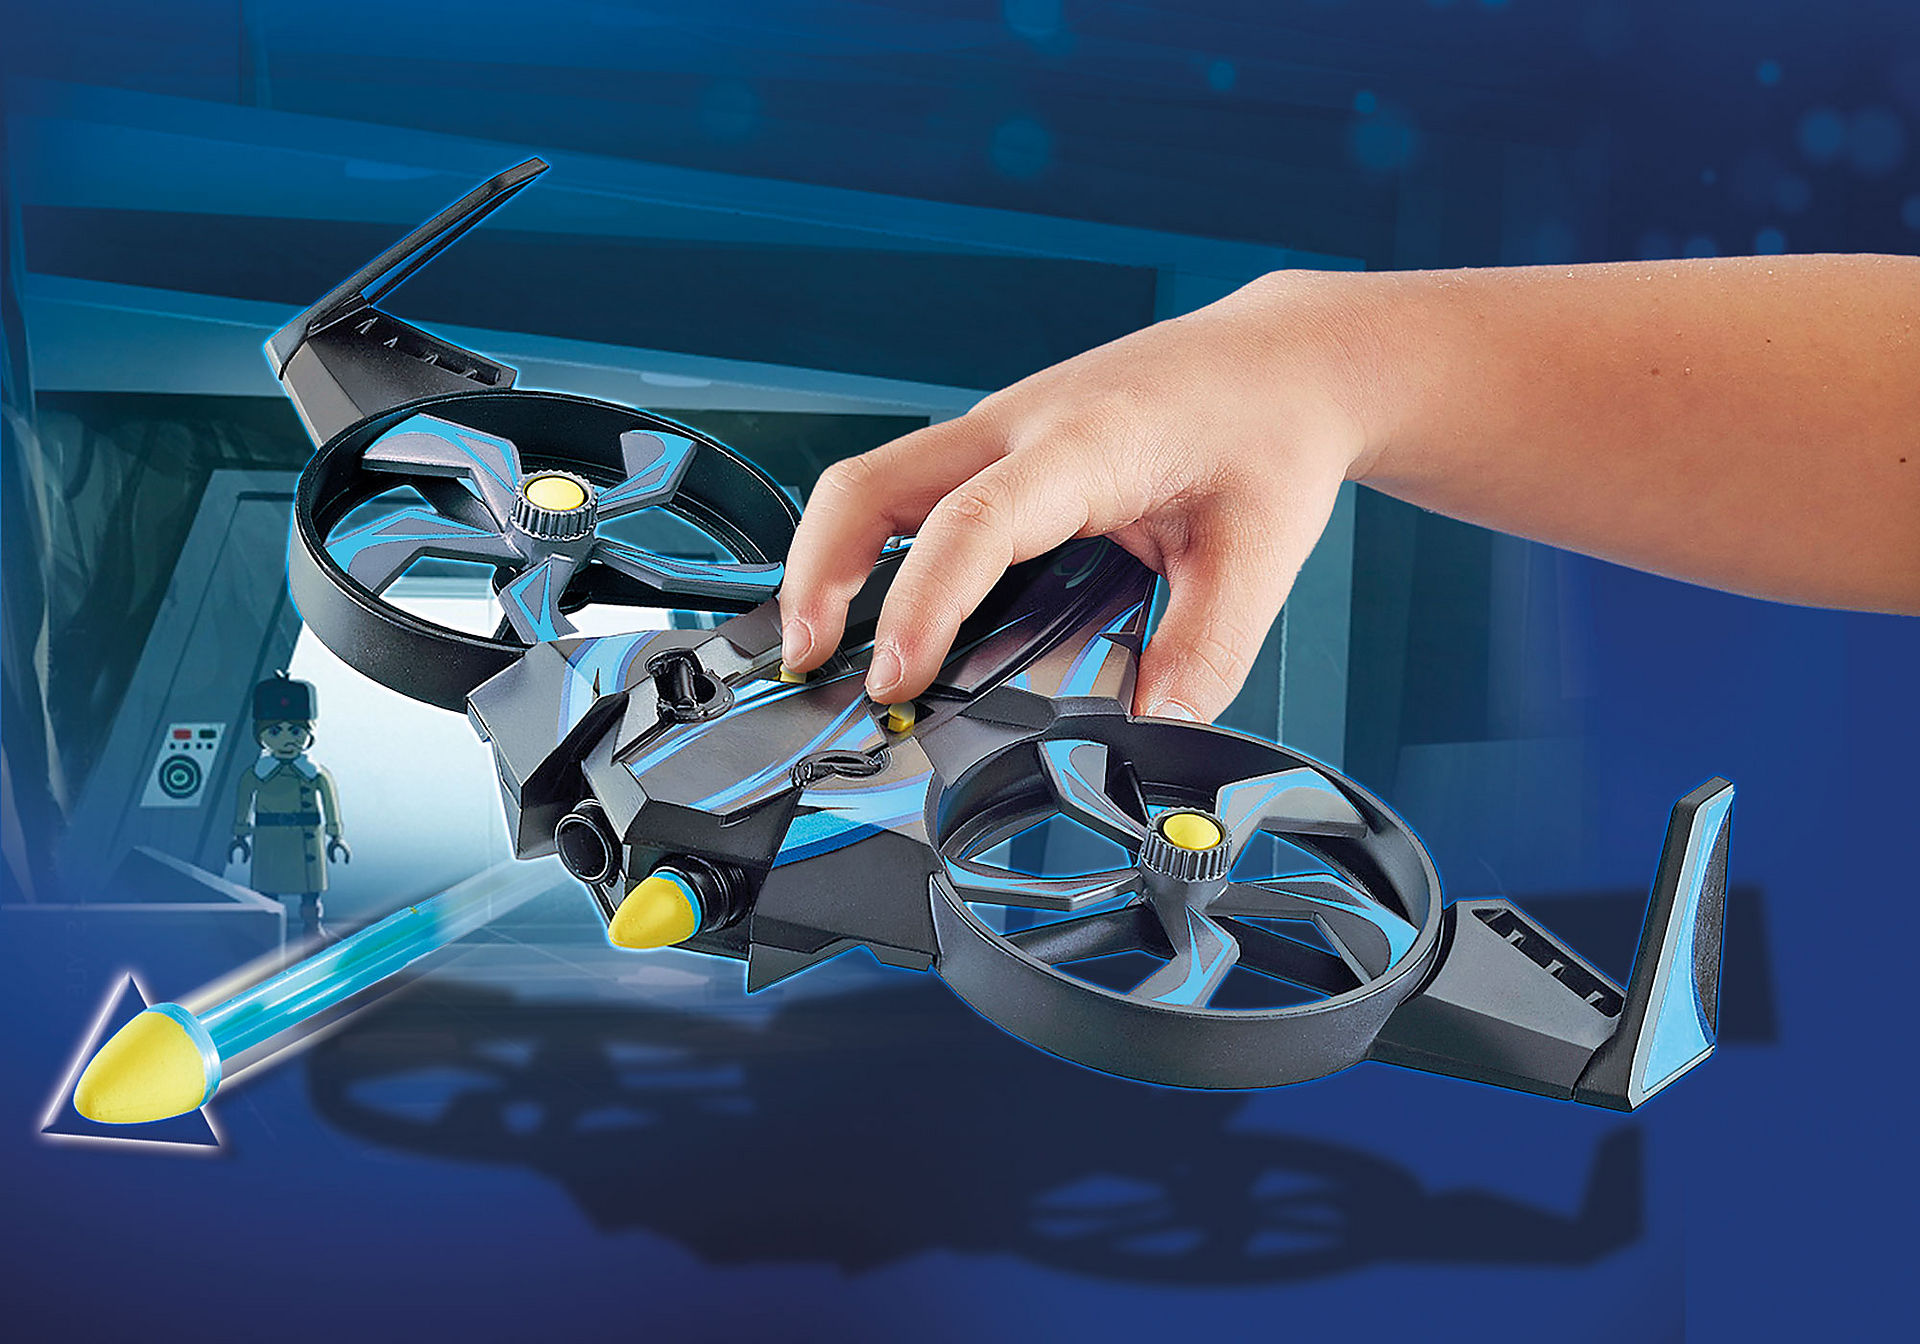 http://media.playmobil.com/i/playmobil/70071_product_extra1/PLAYMOBIL: THE MOVIE Robotitron avec drone